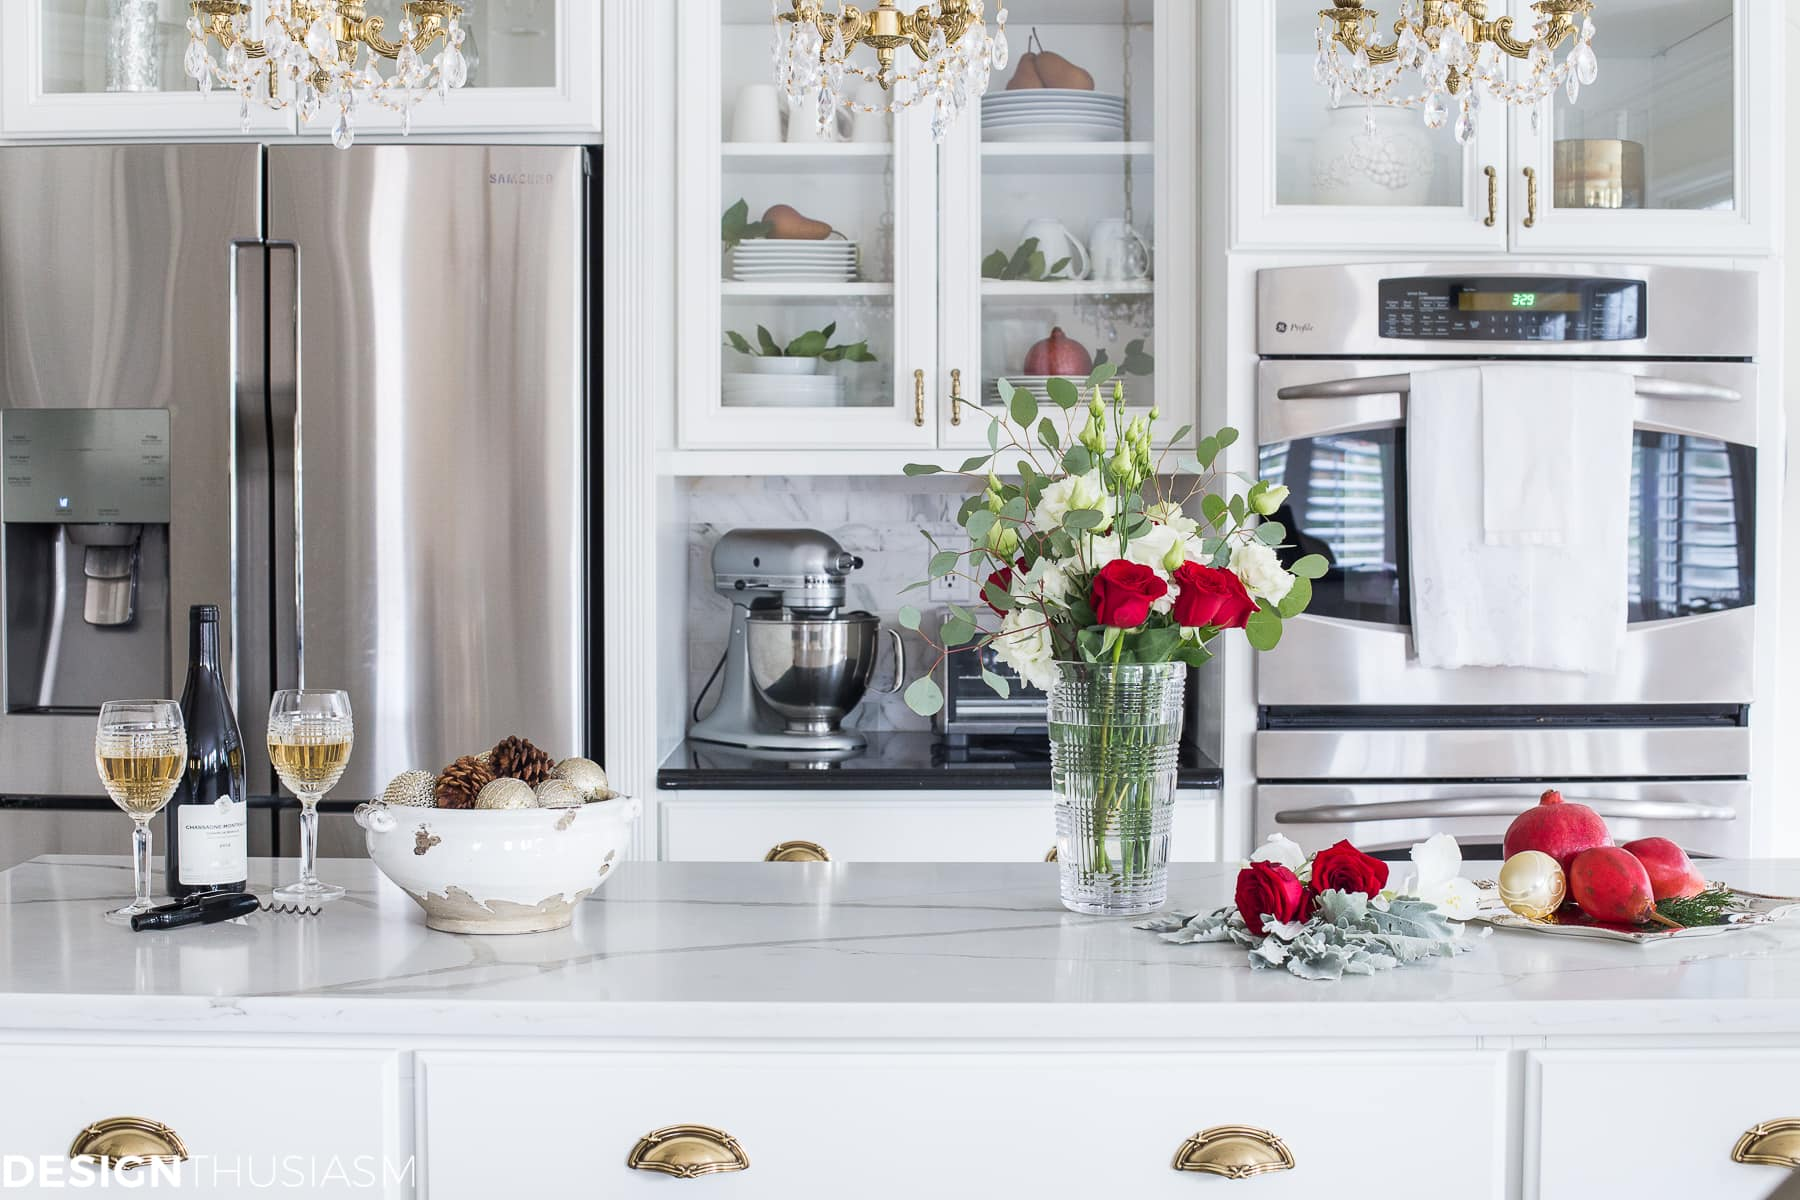 Christmas kitchen decor with french country elegance French country kitchen decor